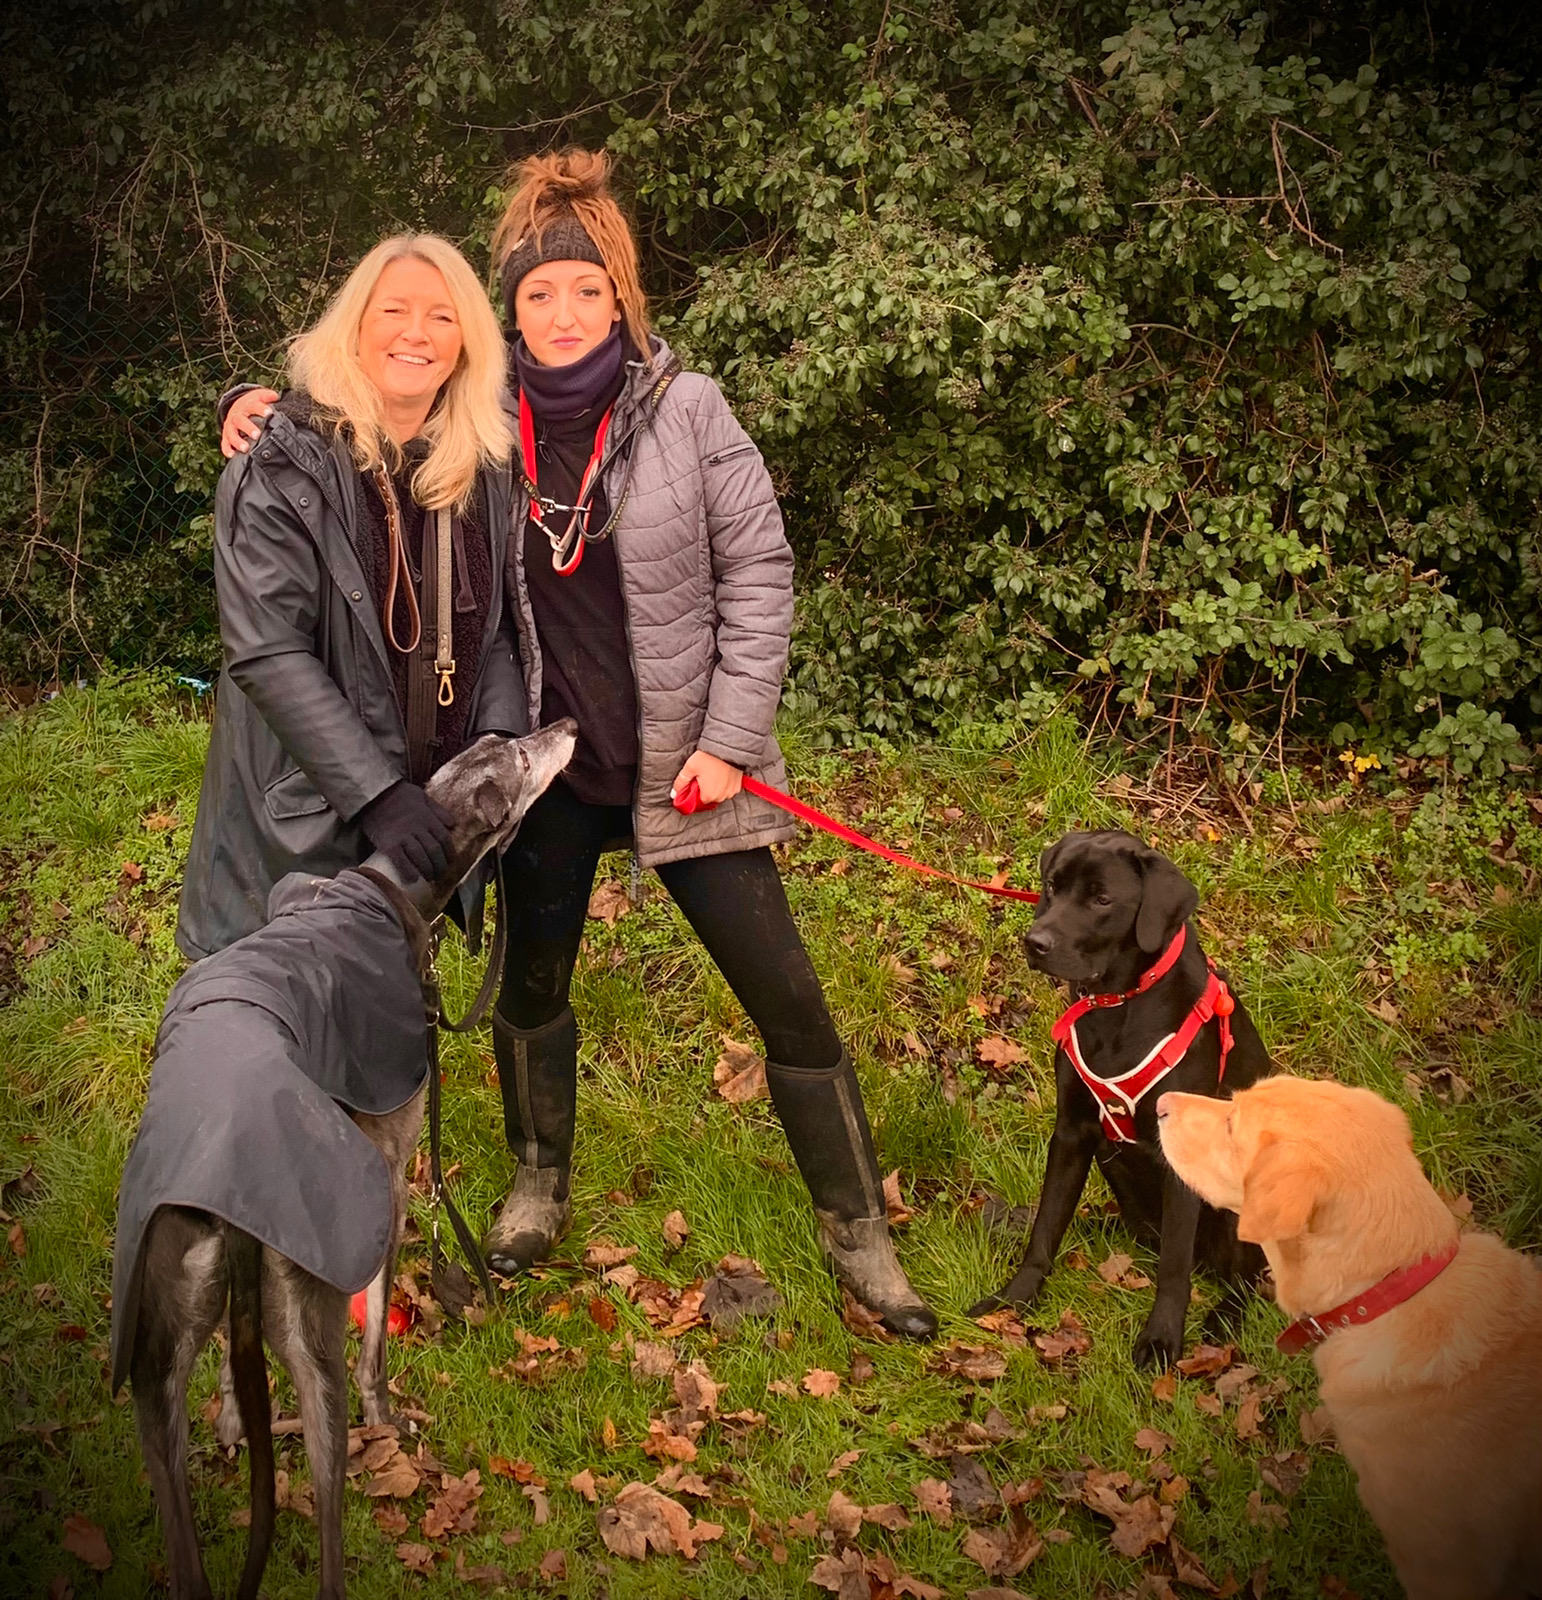 herts hiking hounds dog walking and training abbots langley kings langley hertfordshire about us